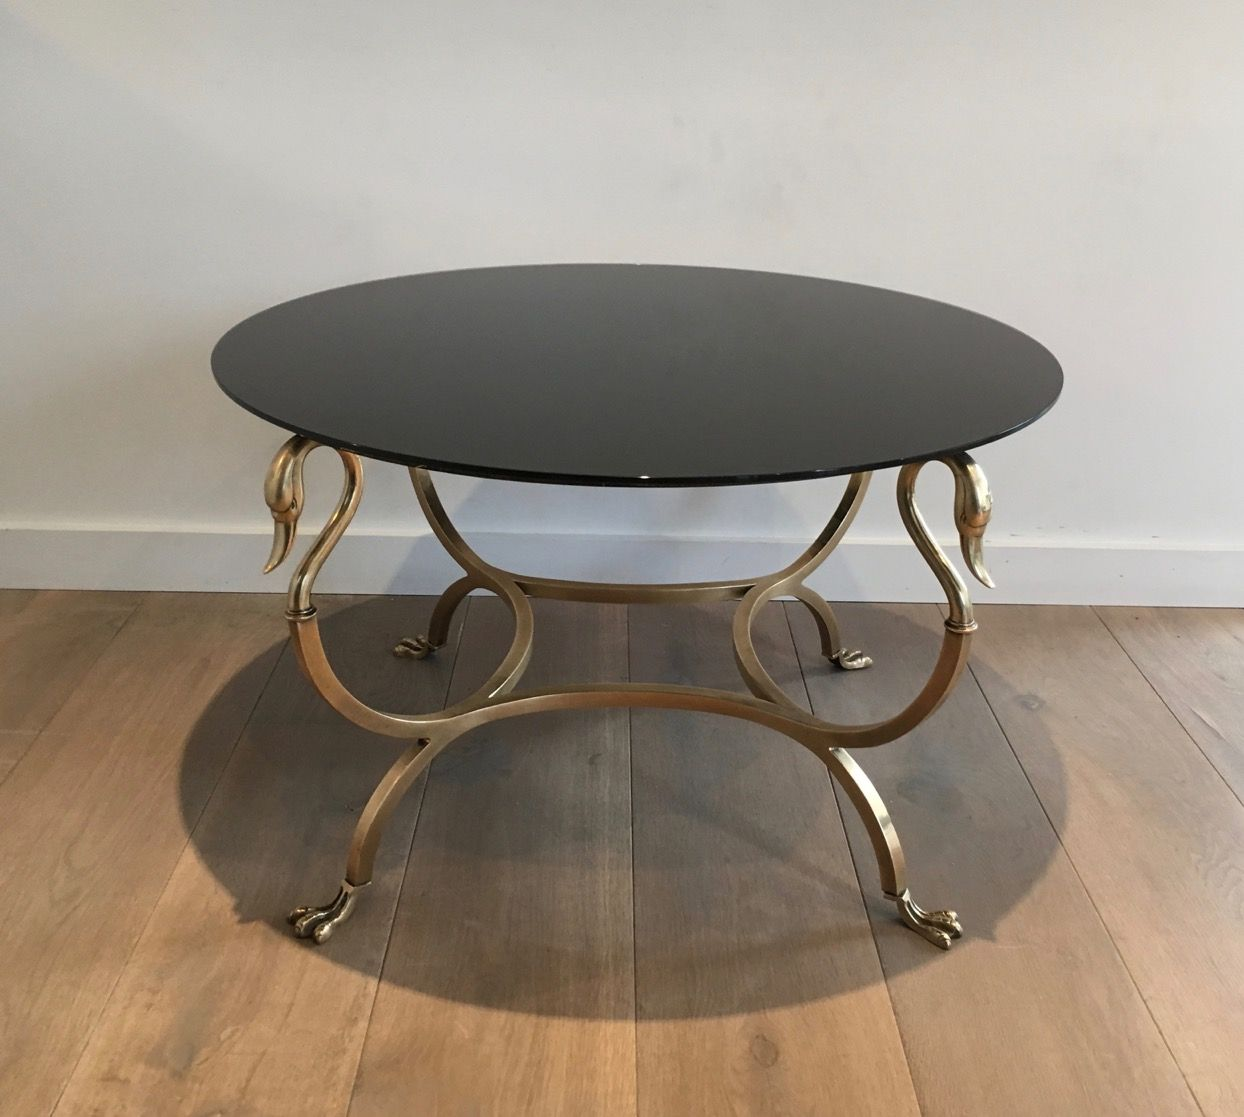 Vintage Round Coffee Table With Swan Details For Sale At Pamono